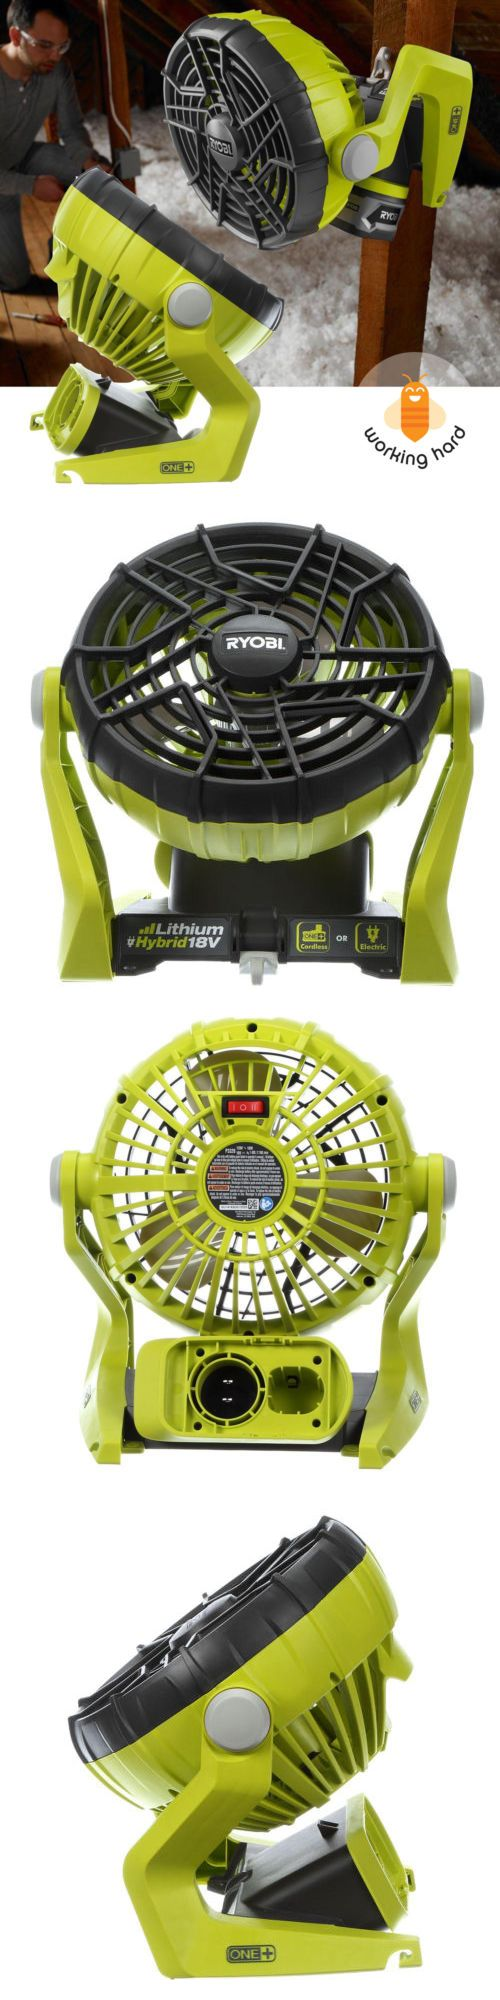 Portable Fans 20612: Hybrid Portable Fan Ryobi Indoor Outdoor Cooling Cordless Battery Powered Compac -> BUY IT NOW ONLY: $51.5 on eBay!